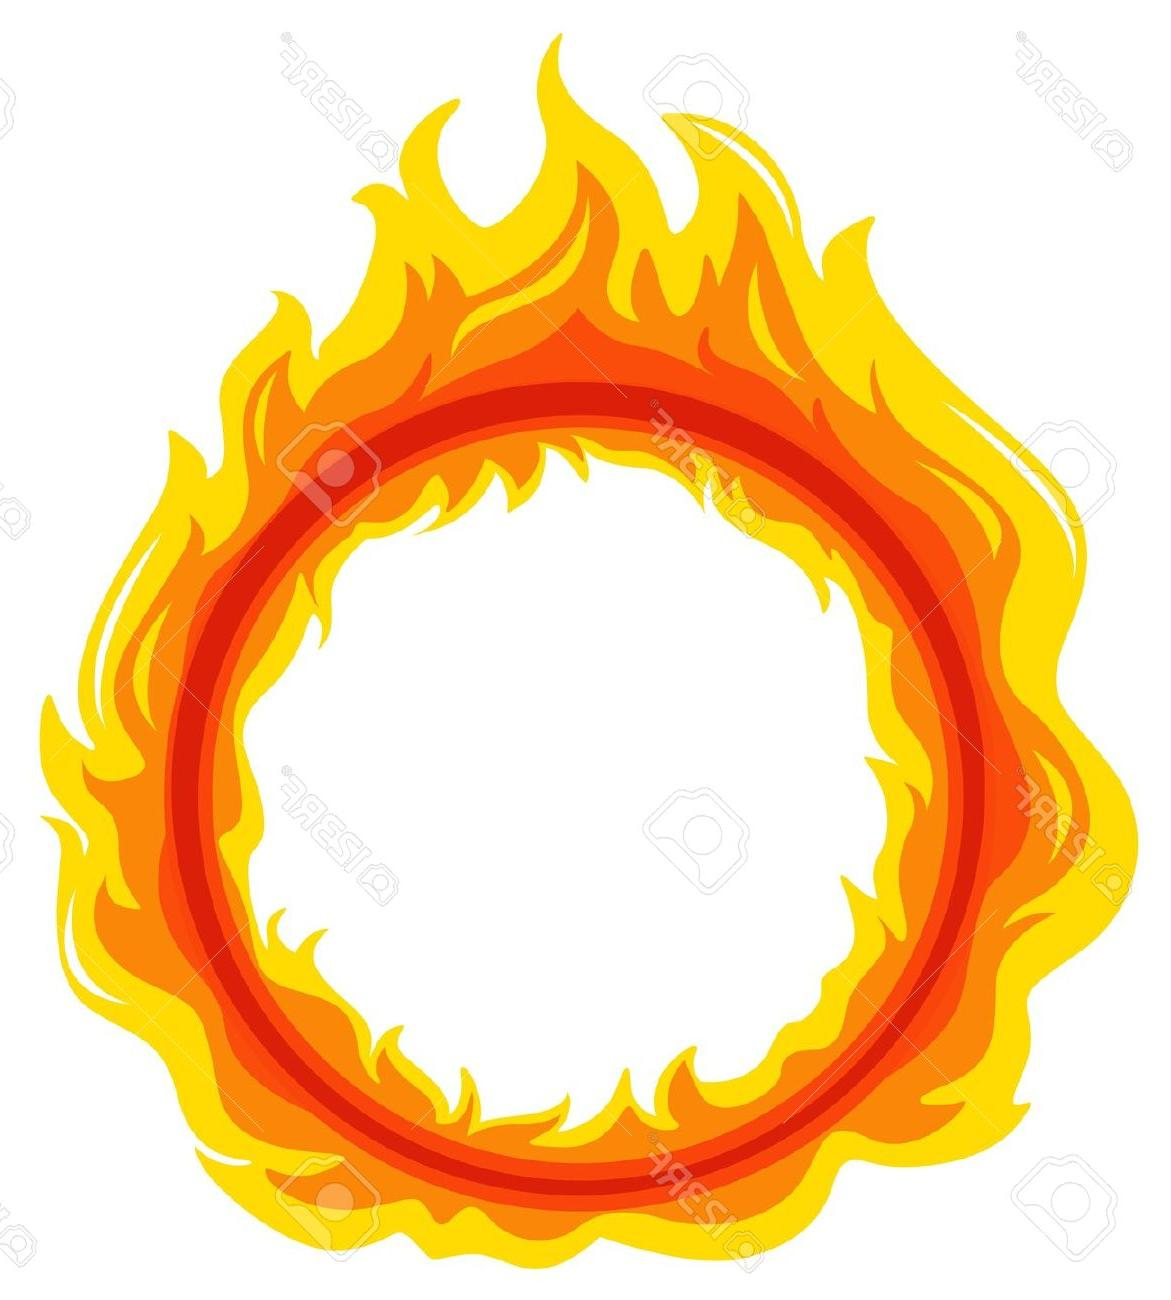 Flames clipart flame outline Fire Free  Of Library